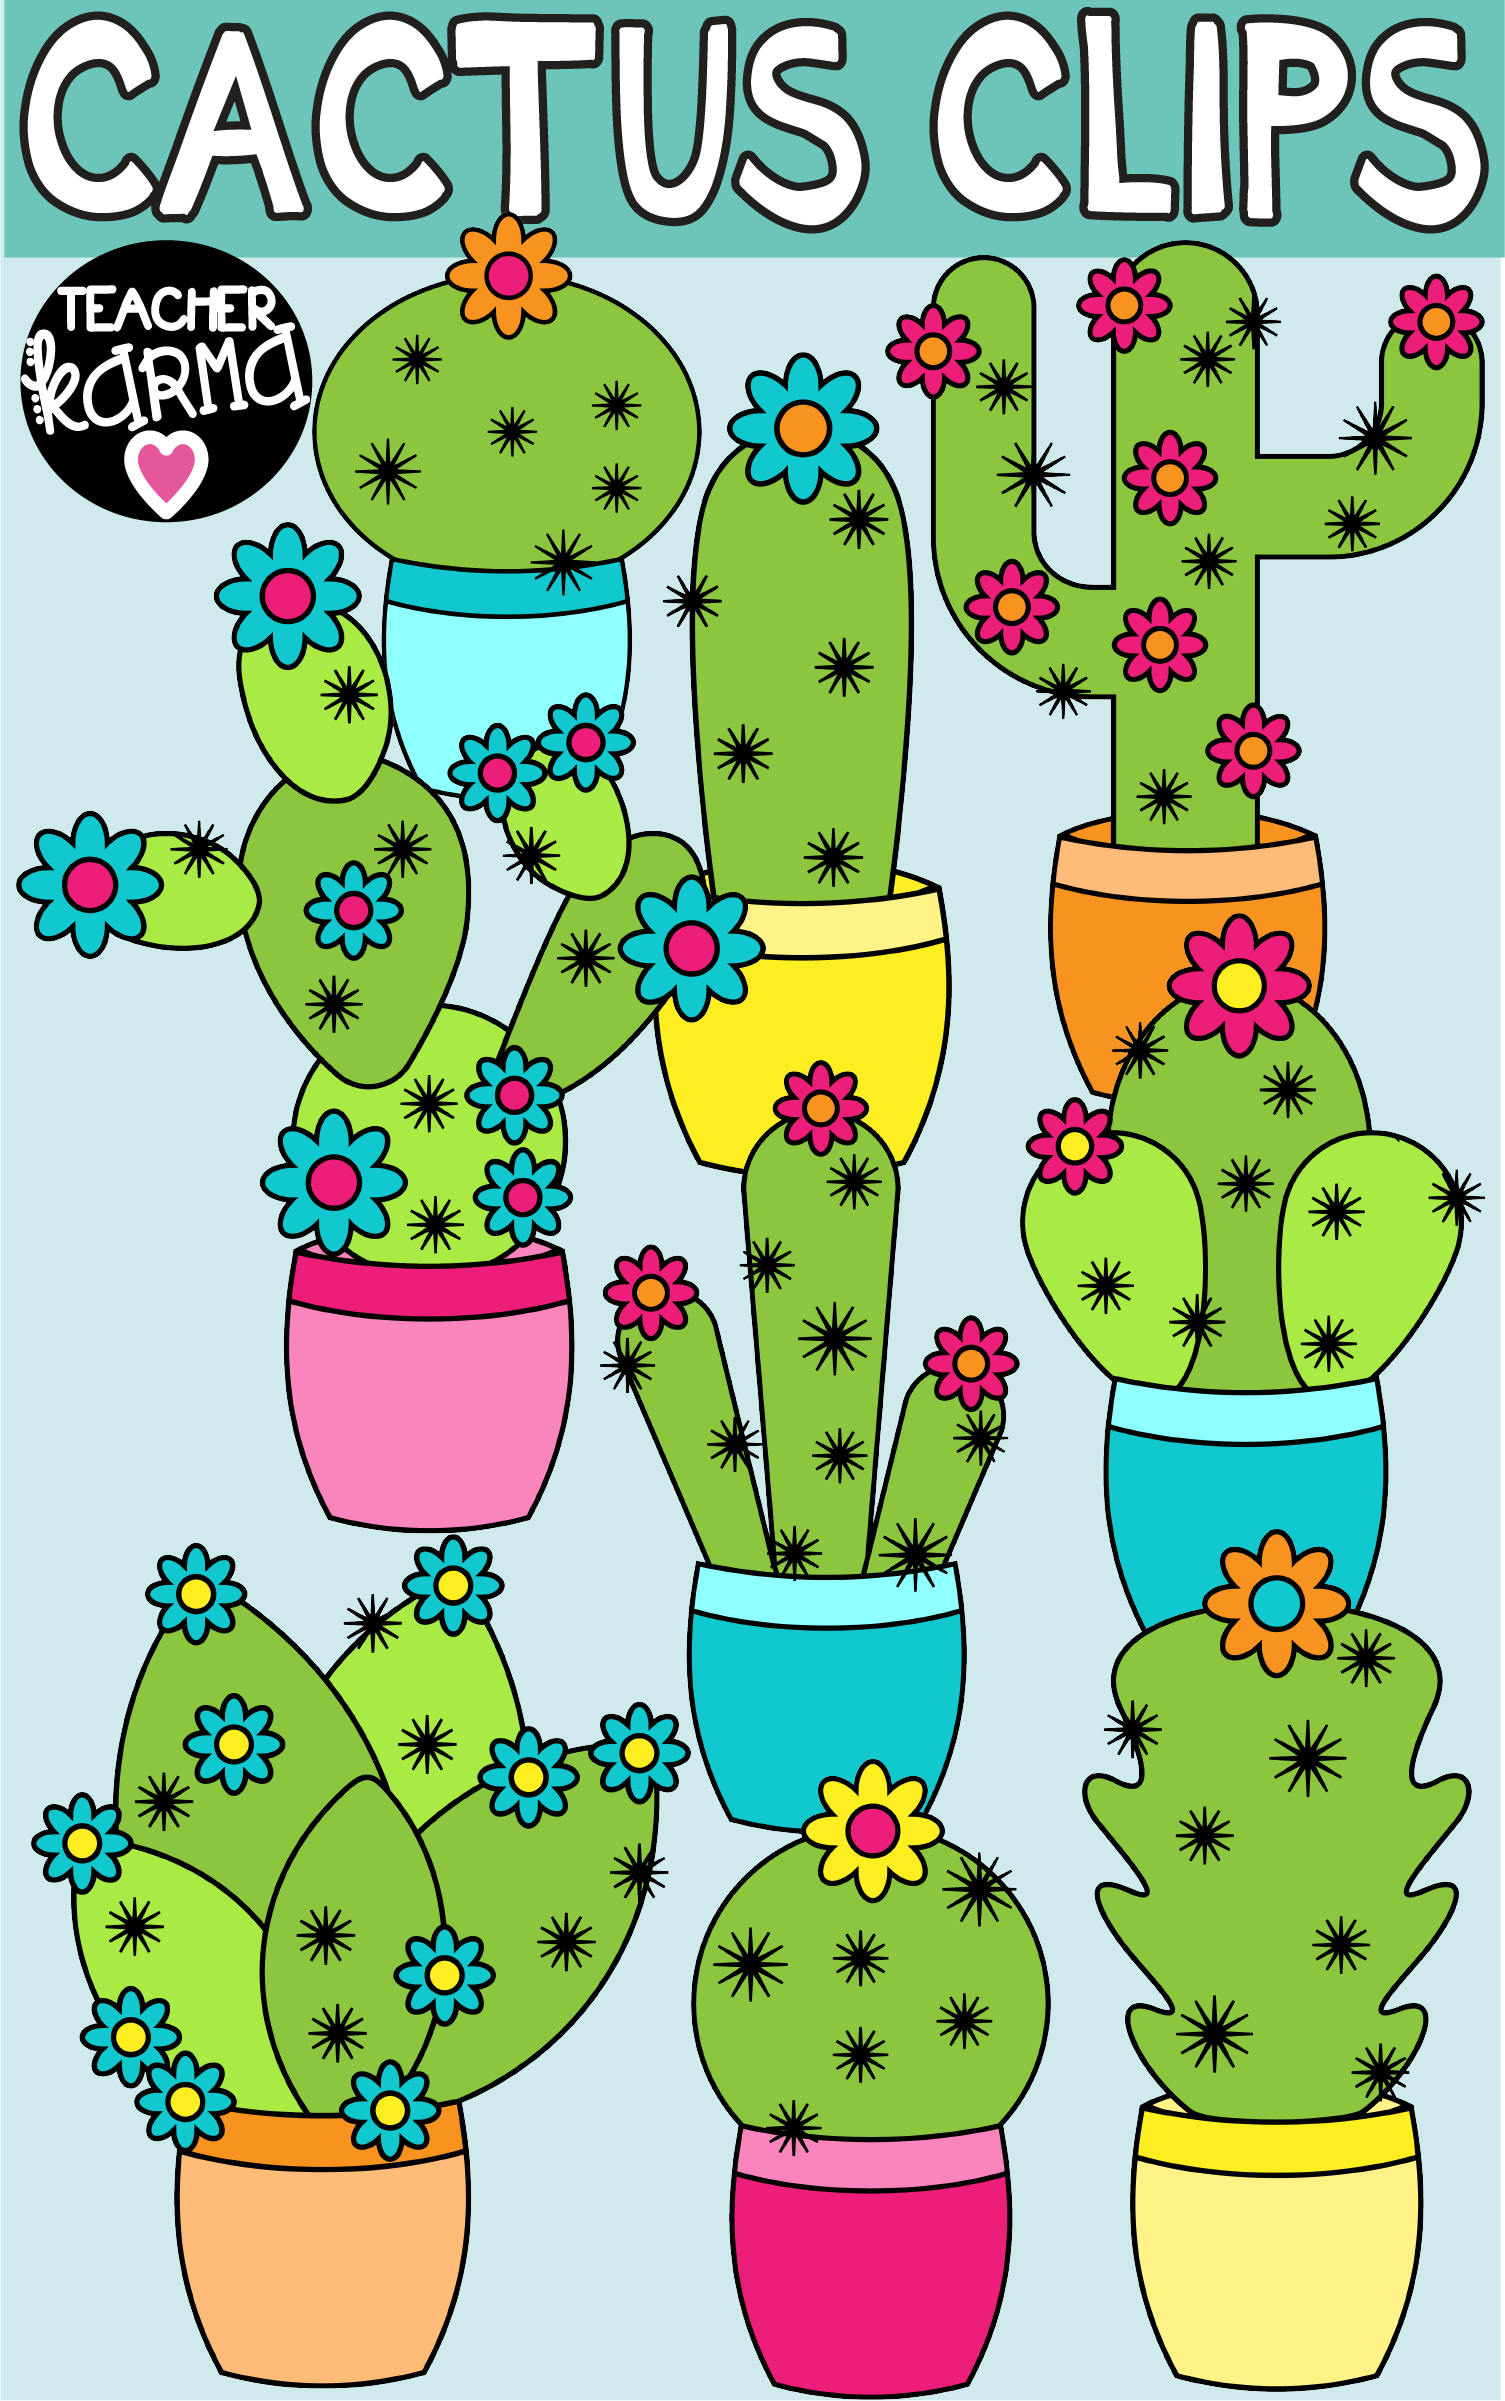 medium resolution of cactus clipart is perfect for classroom decor teacher organization or to create products to sell on tpt cacti graphics are ok for commercial use